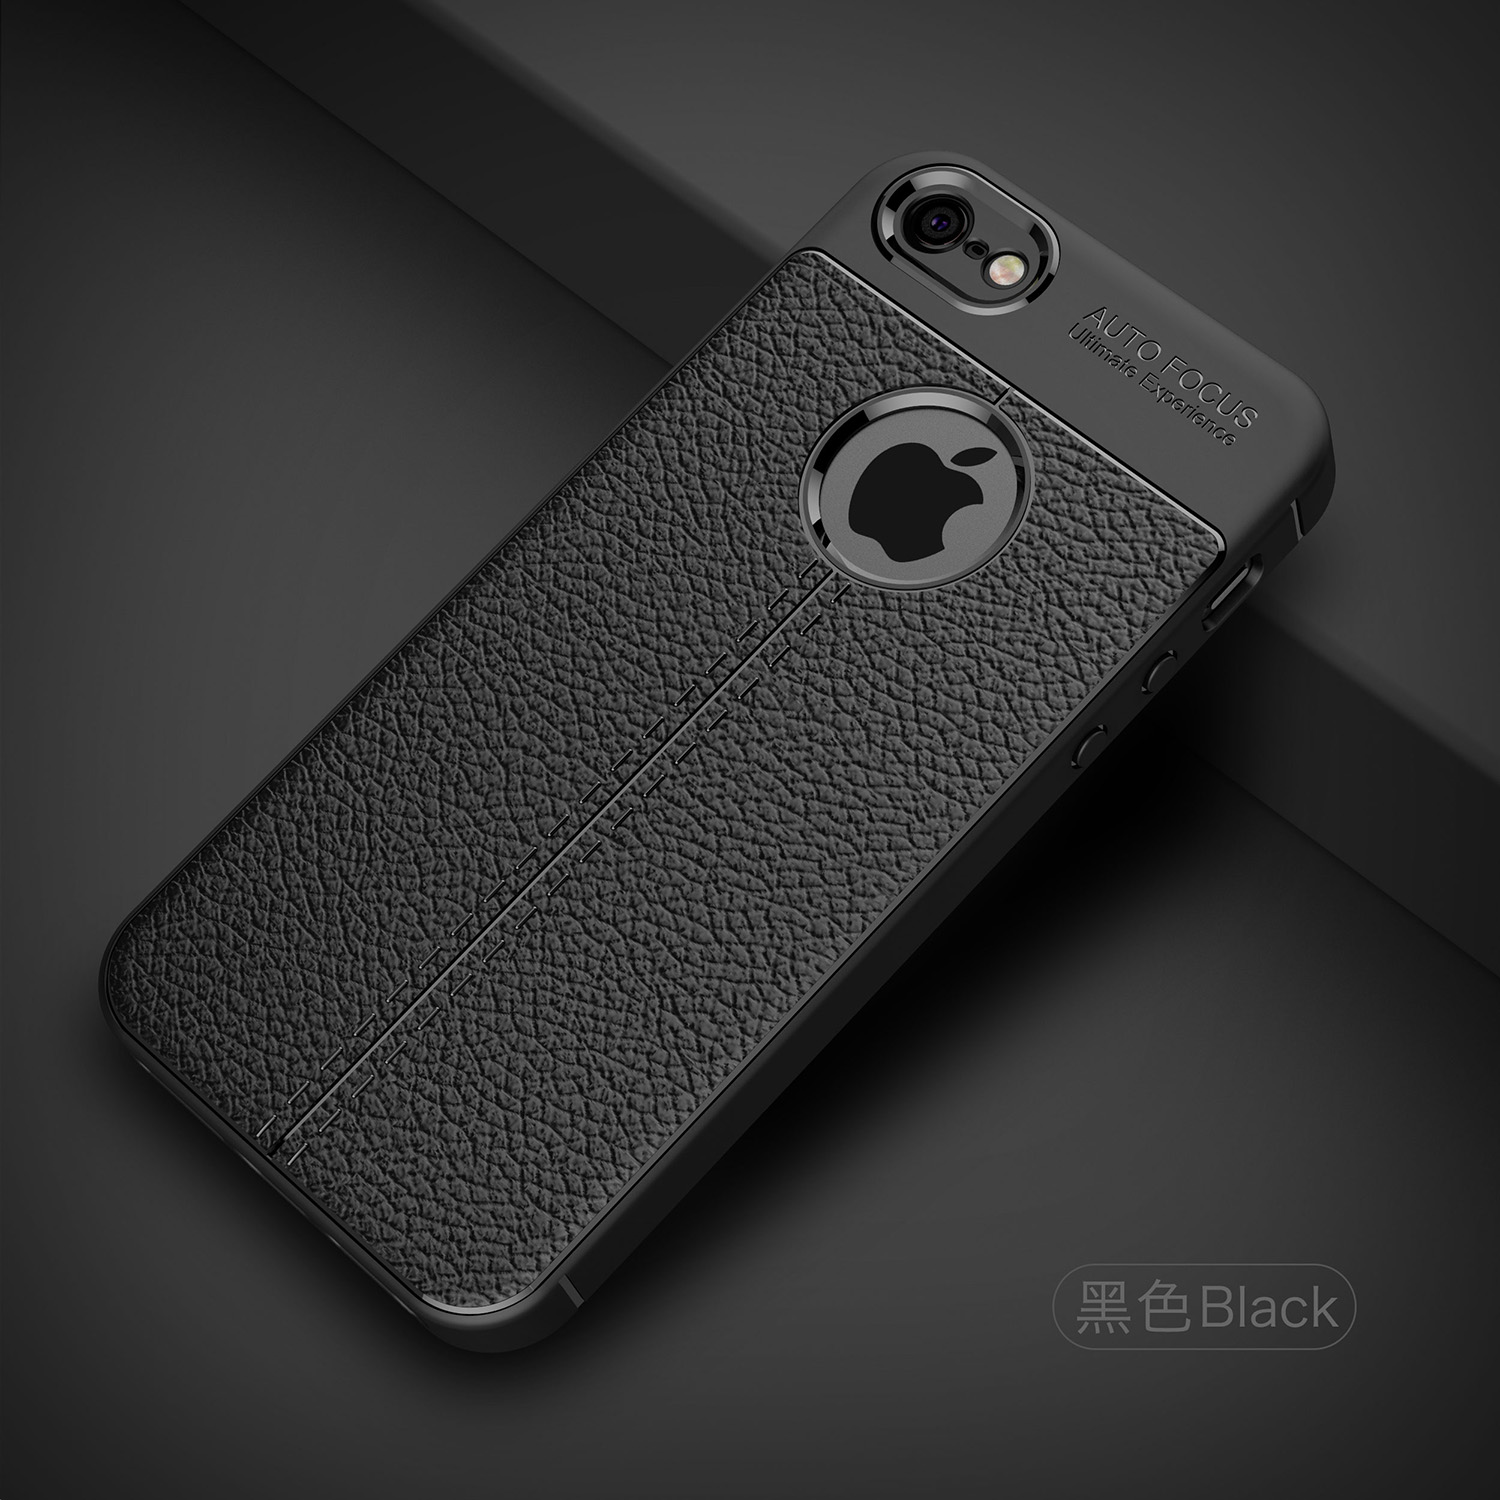 HTB195DilgoQMeJjy0Fnq6z8gFXa4 WolfRule sFor Apple SE Iphone Case Shockproof Case For Apple Se Iphone Se Case Luxury Leather Soft TPU For Iphone 5s Cover ]